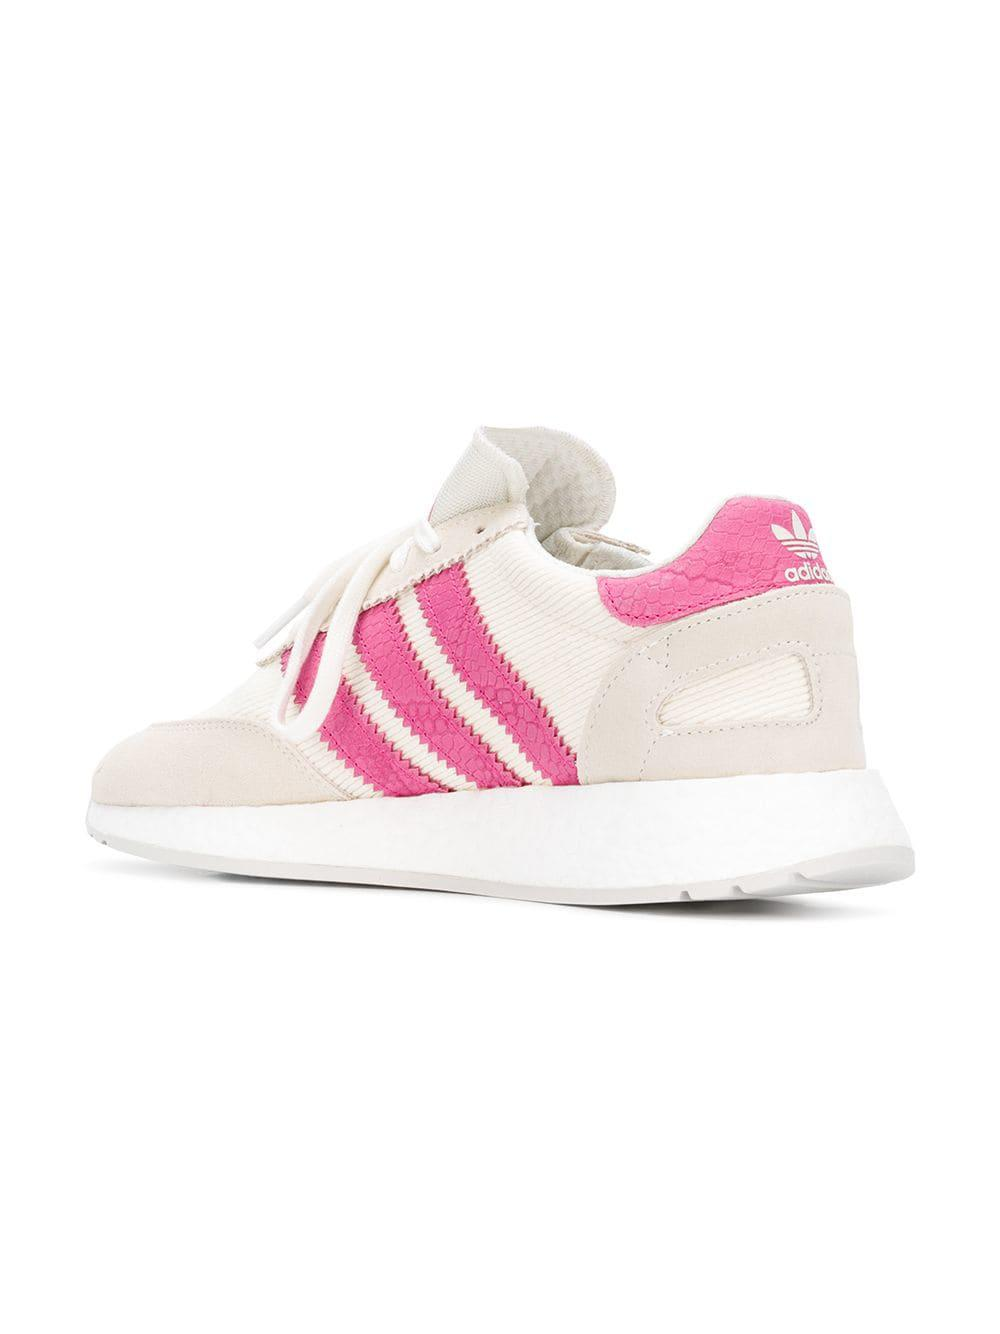 classic styles wholesale price lace up in Originals Iniki I-5923 Runner Boost Sneakers